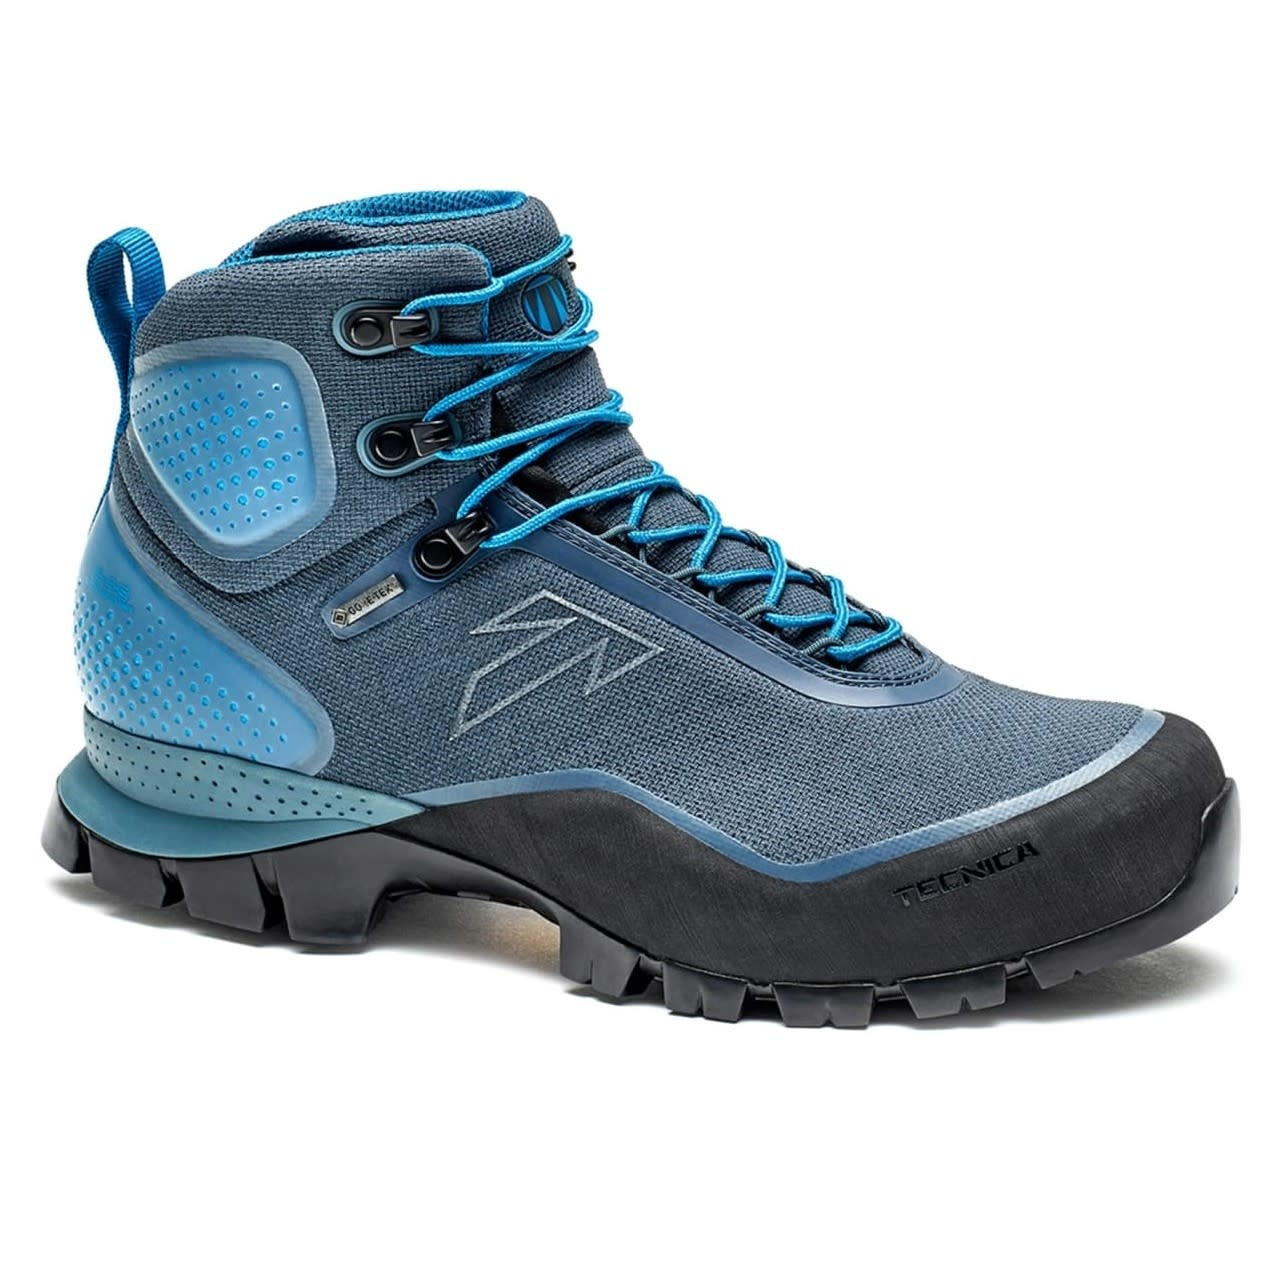 Bottes Tecnica Forge GTX Addiction FemmesVertical S uTKc5lF31J